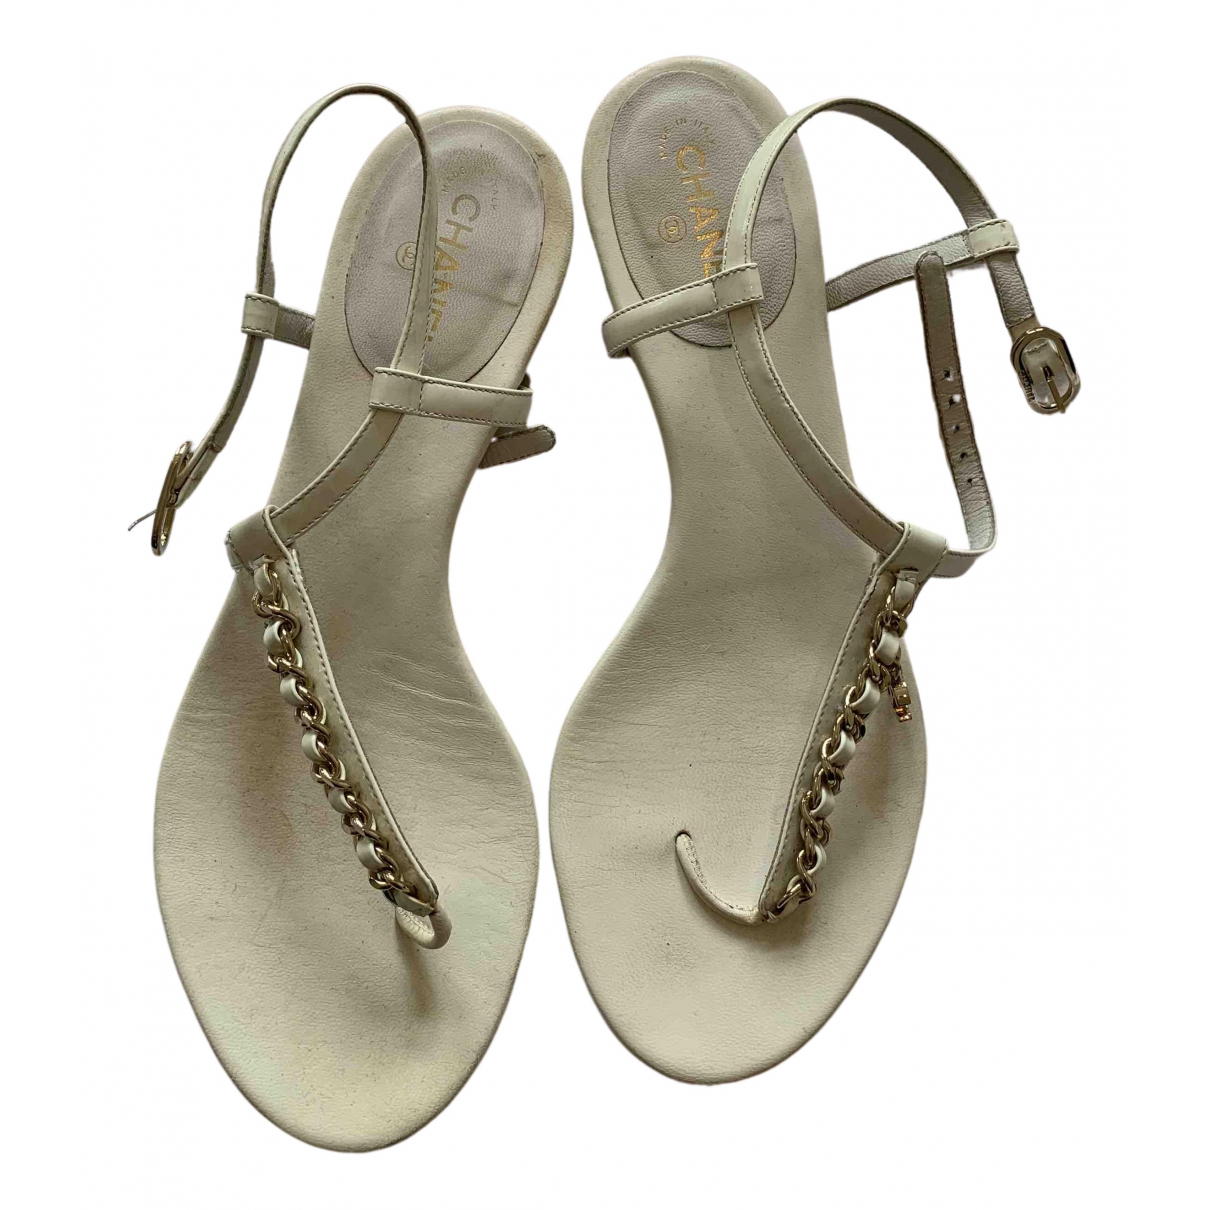 Chanel N White Patent leather Sandals for Women 36.5 EU